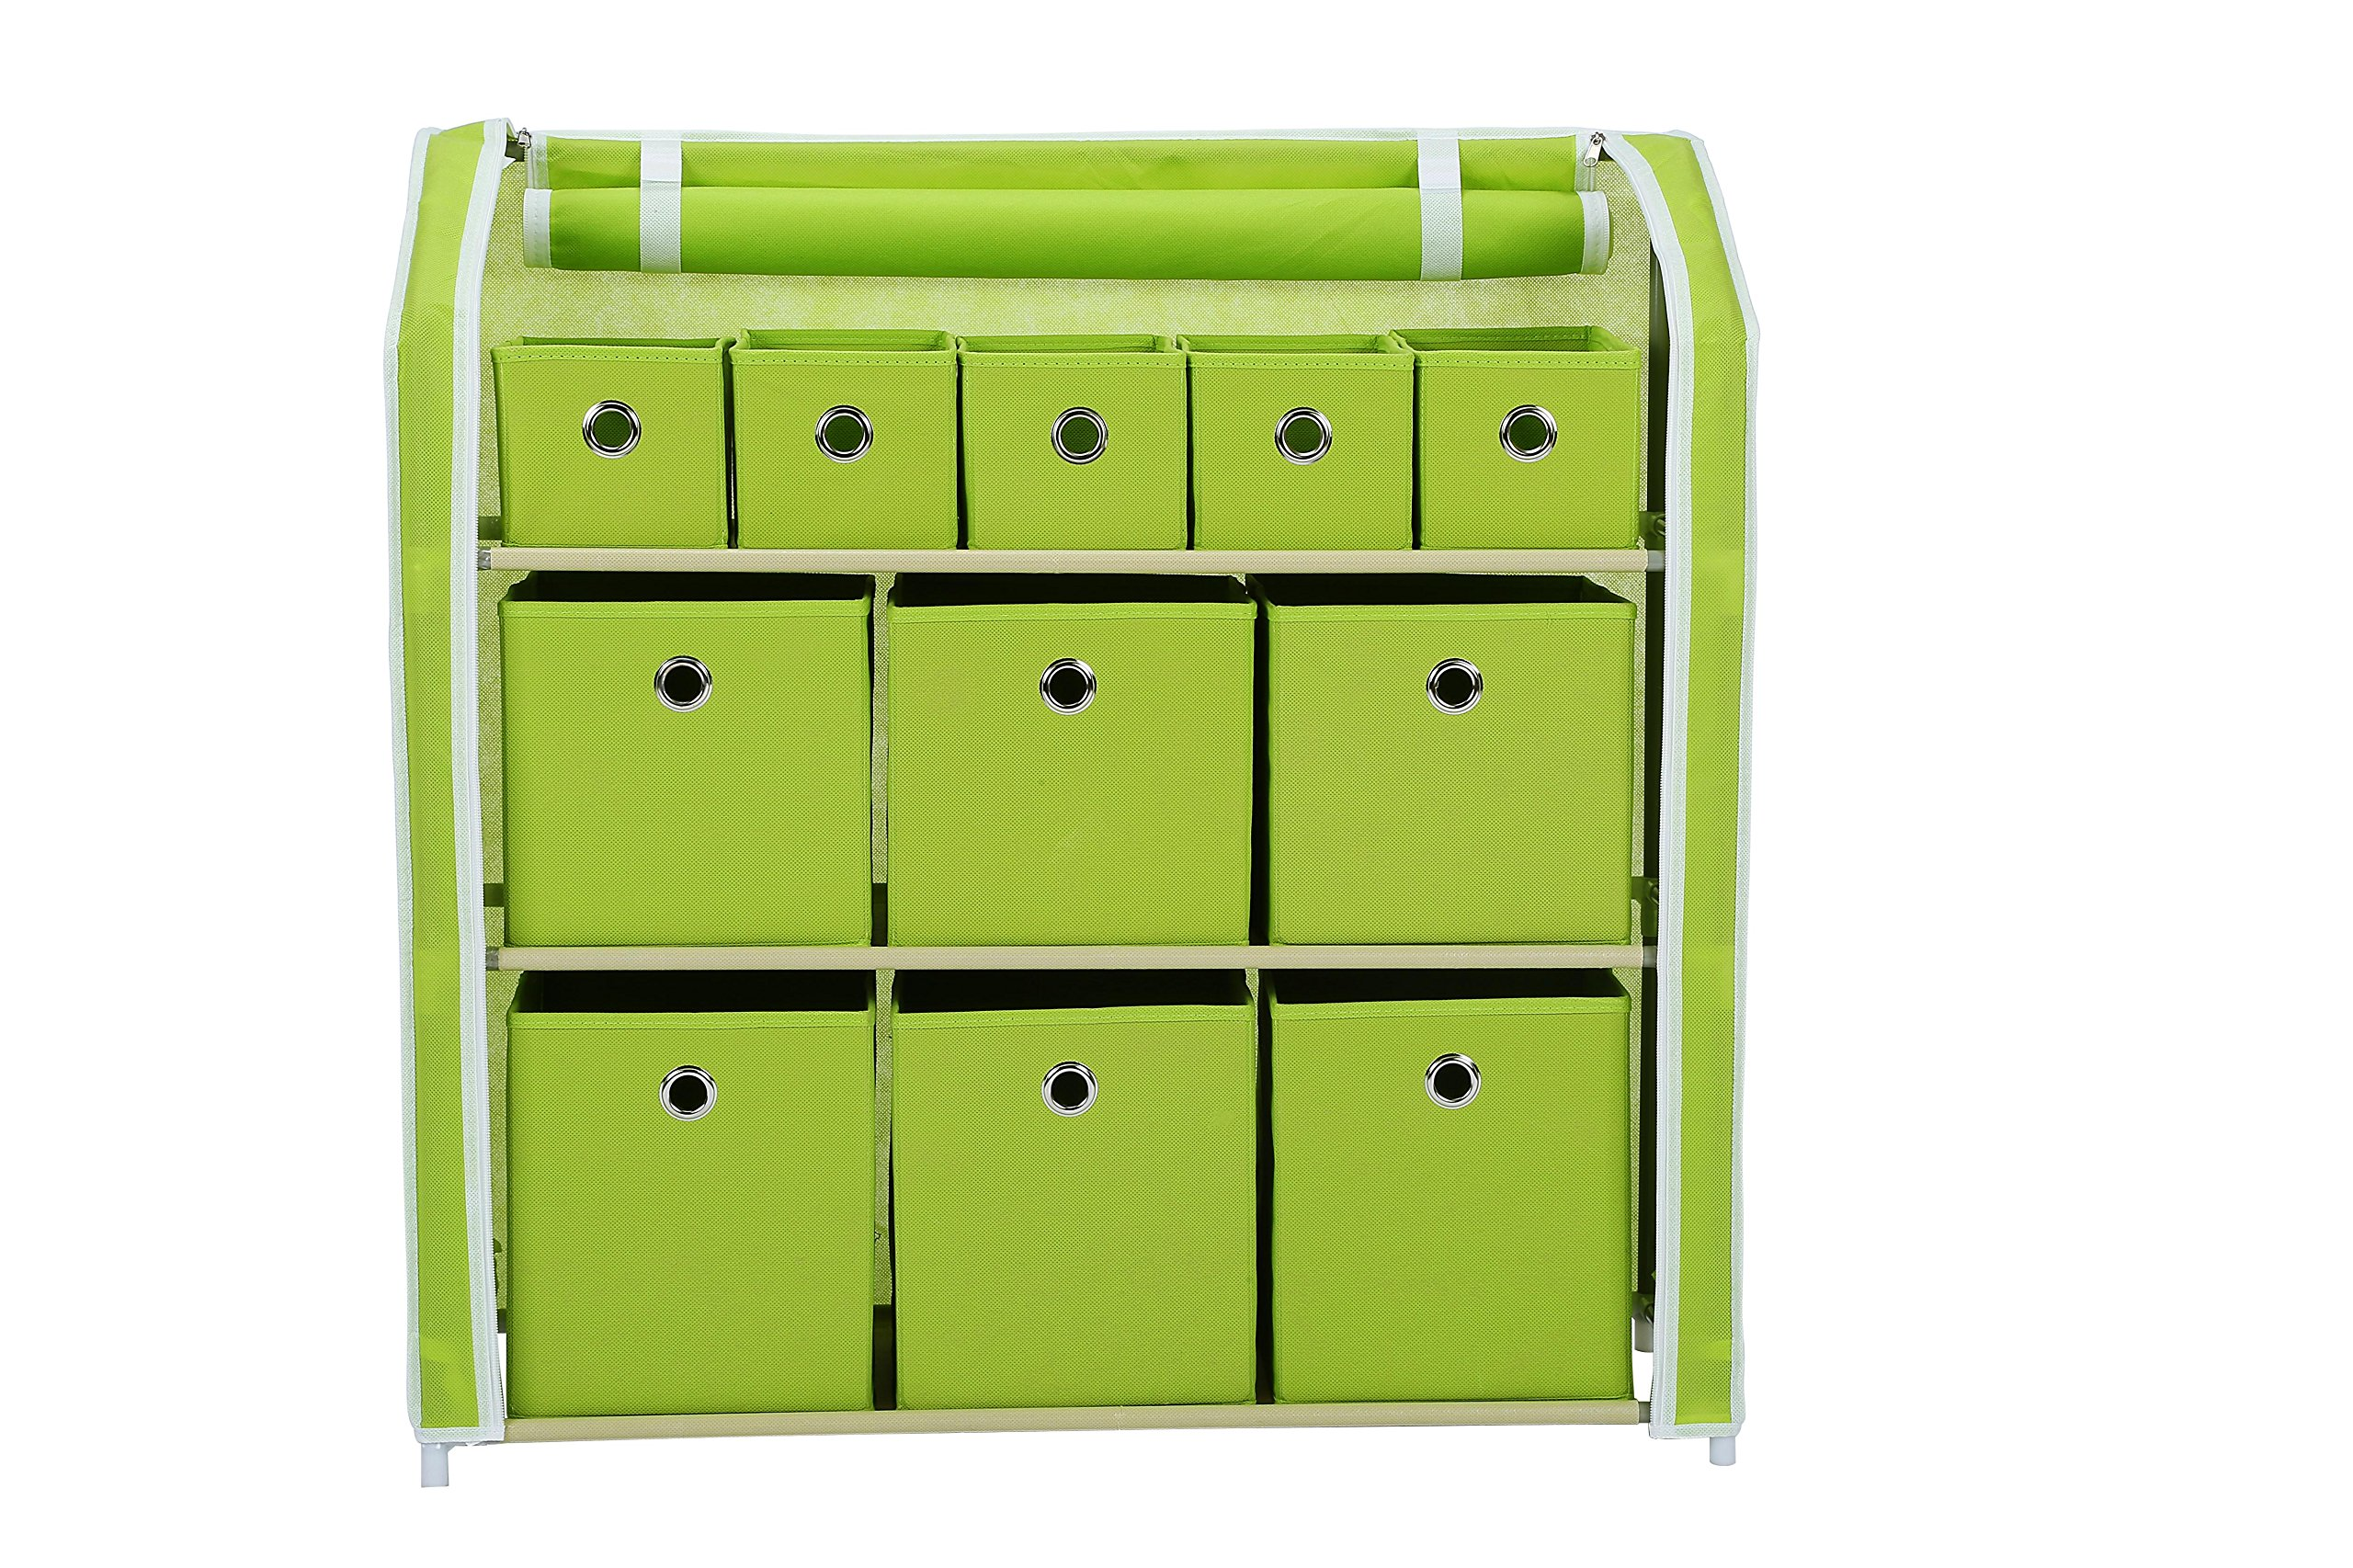 Home-Like 11-Drawer Storage Unit Multi-Bin Toy Organizer DIY Storage Cabinet Multi-Purpose Storage Chest Metal Shelf with Removable Fabric Bins Ideal for Home Office Bedroom Green (11 Drawer-Green)